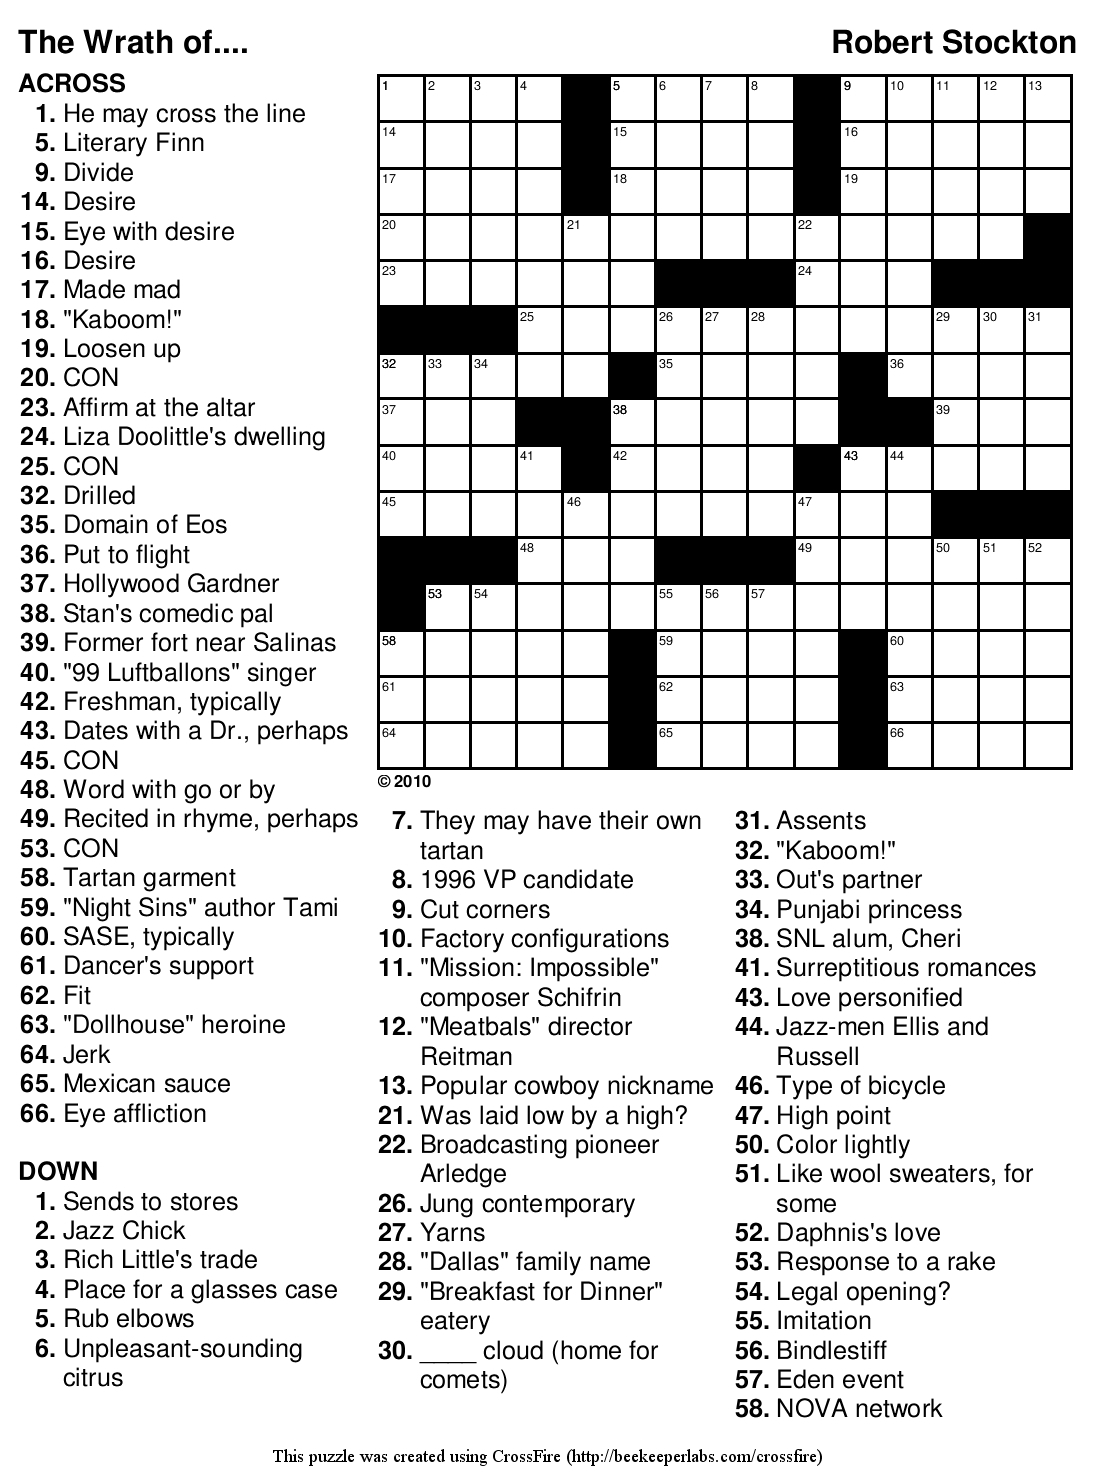 Free Printable Large Print Crossword Puzzles | M3U8 - Print Large Puzzle